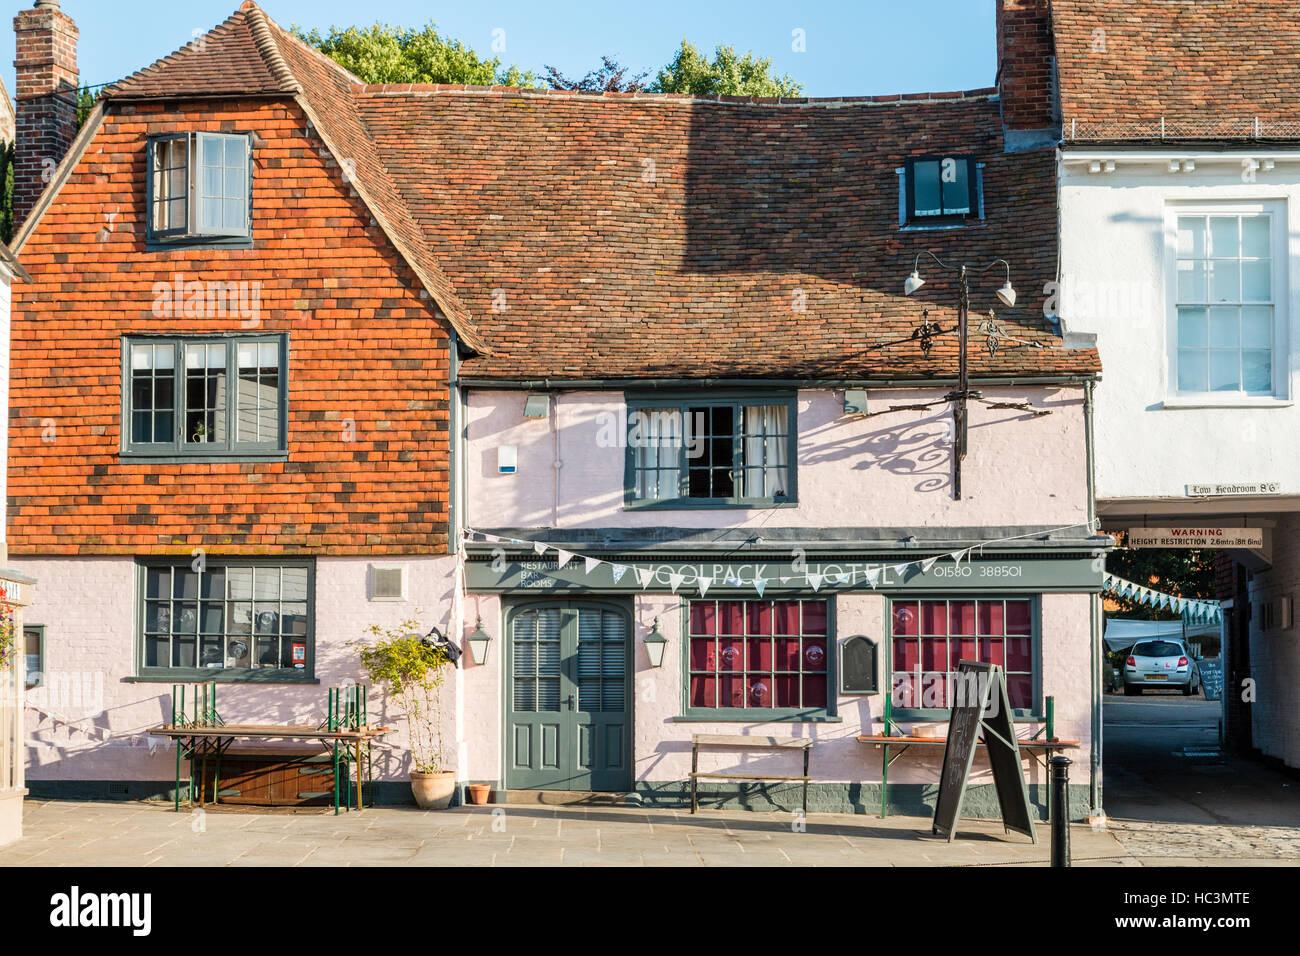 16th century Coaching Inn, now used as hotel. 'The Wool pack' in Tenterden High Street, Kent. Two-story - Stock Image